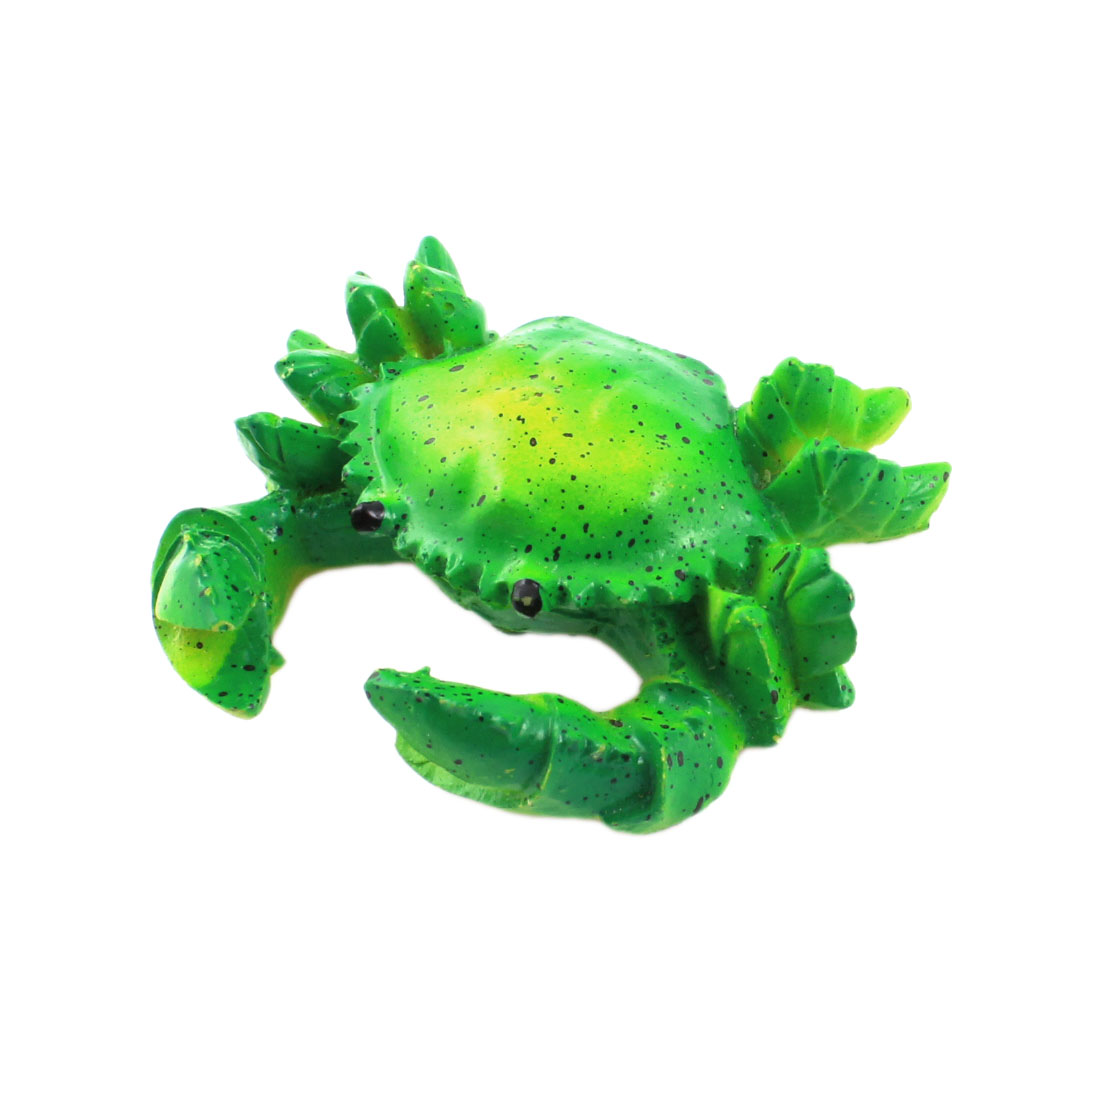 Fish Tank Aquarium Green Artificial Crab Granchio Decoration 6cm Width